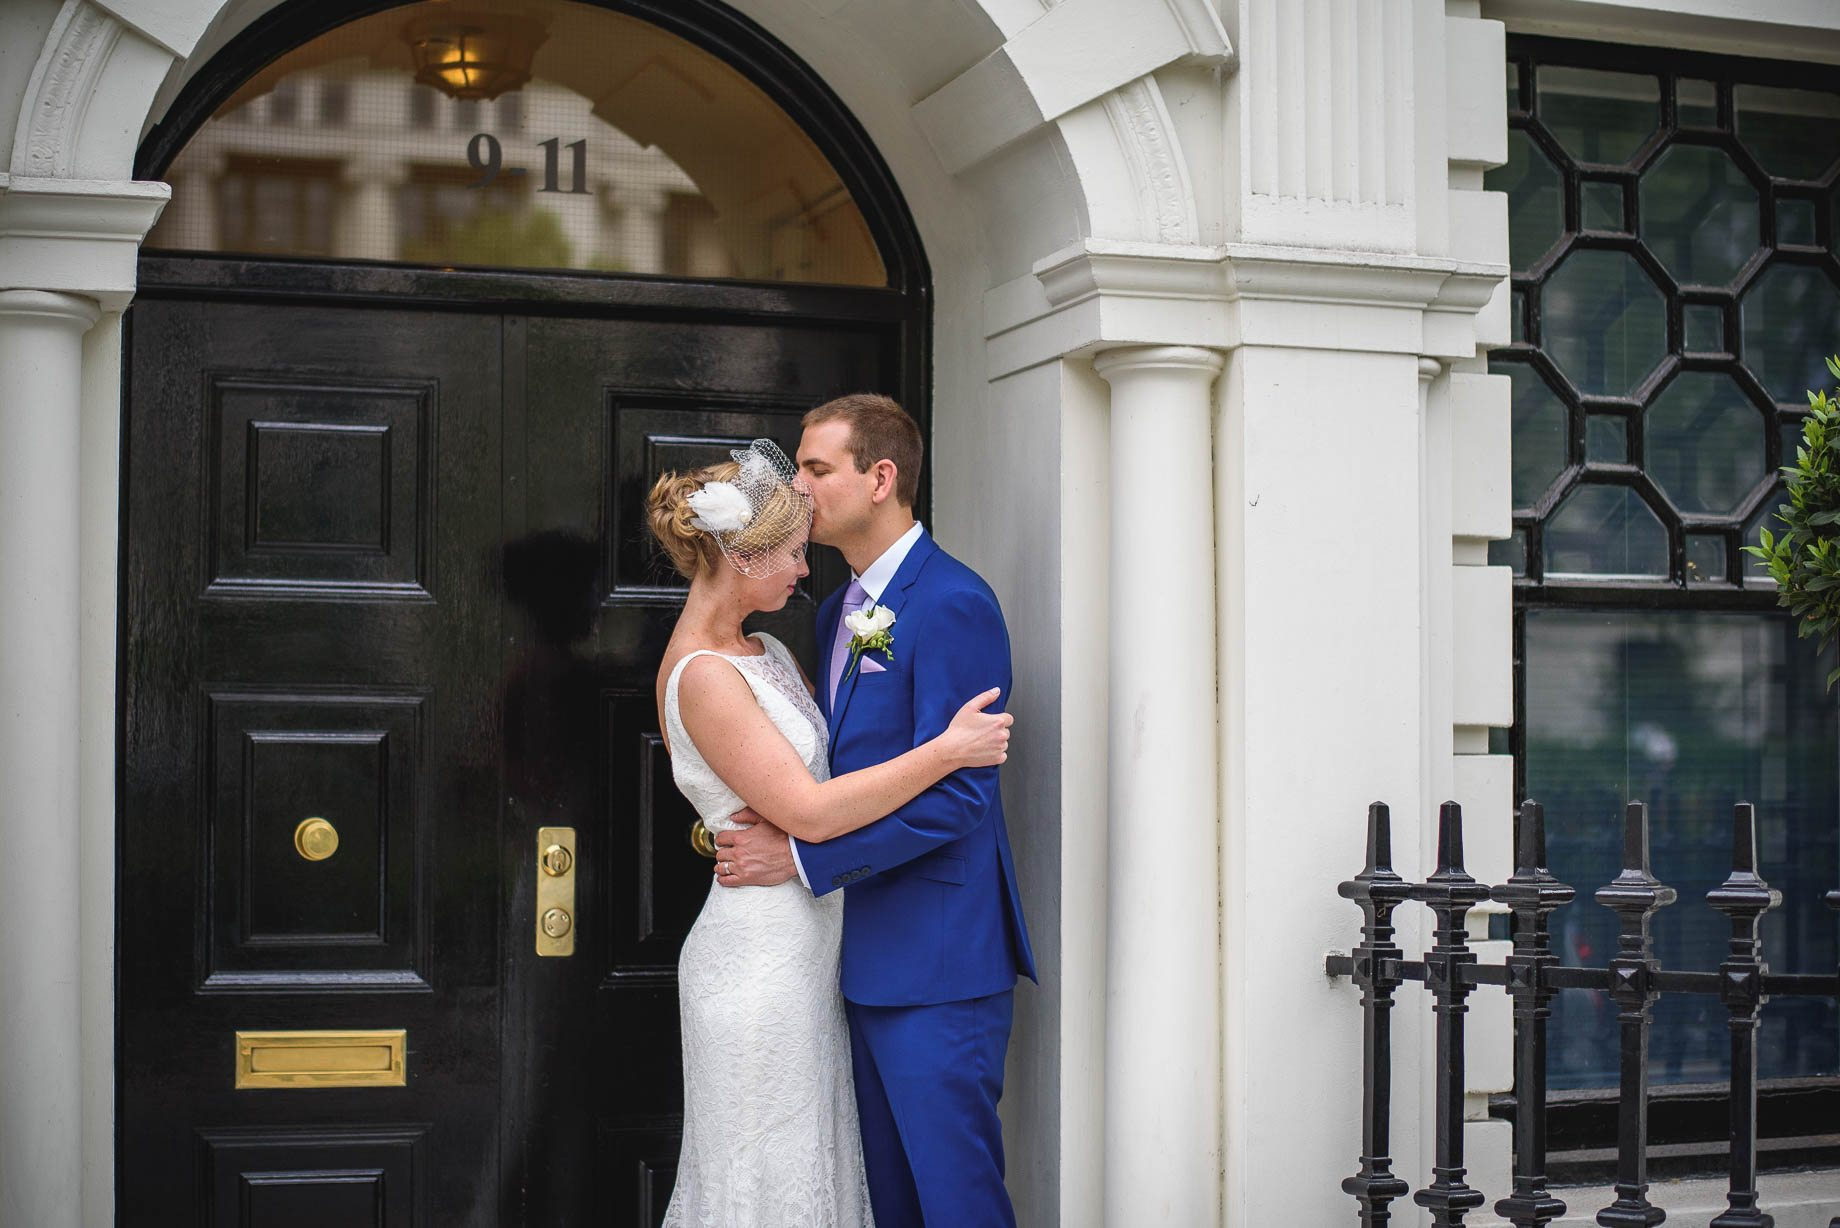 Bllomsbury House wedding photography in London - Katie and Taylor (76 of 156)